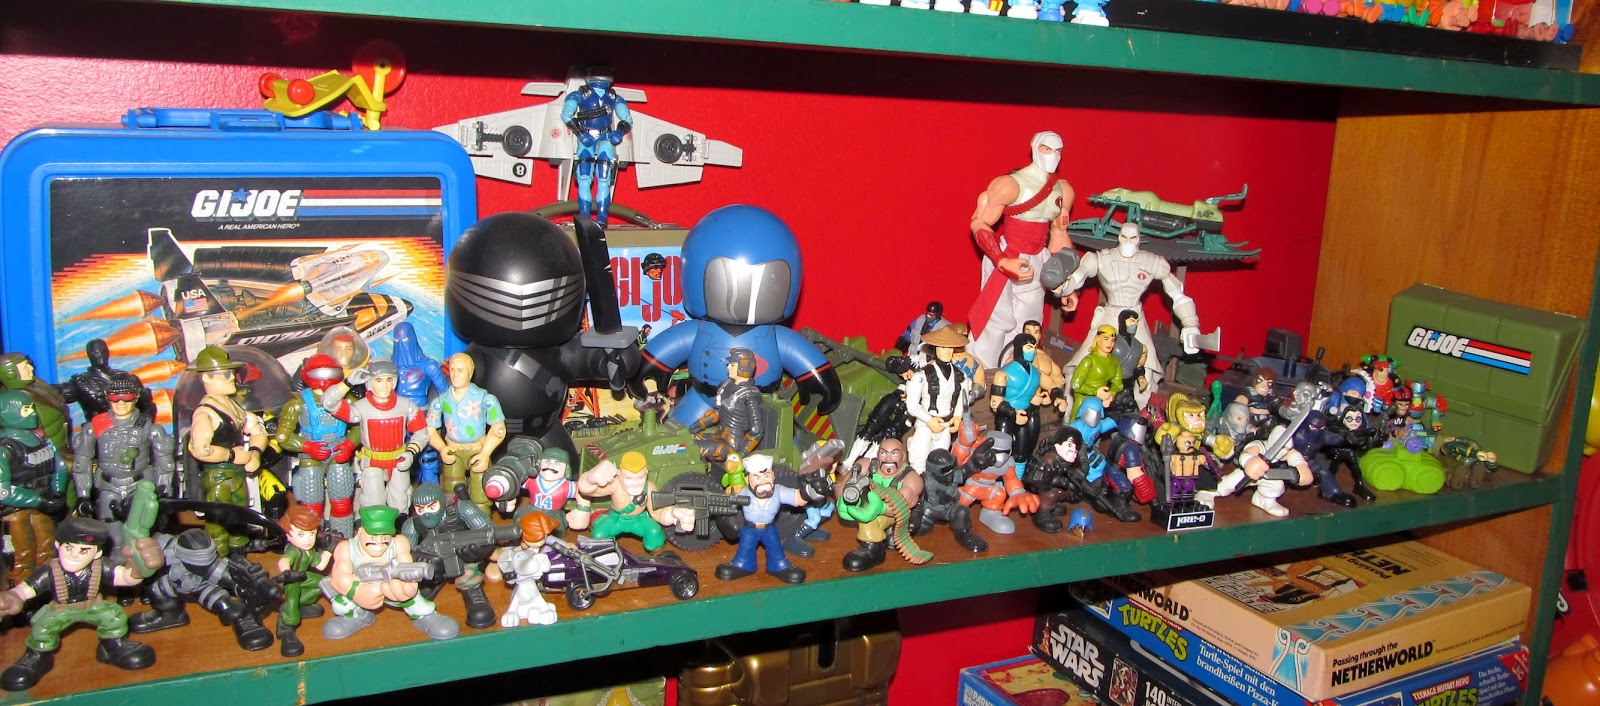 80 Toy Action Figure Shelves - IMG_3240_Beautiful 80 Toy Action Figure Shelves - IMG_3240  Pic_335359.JPG